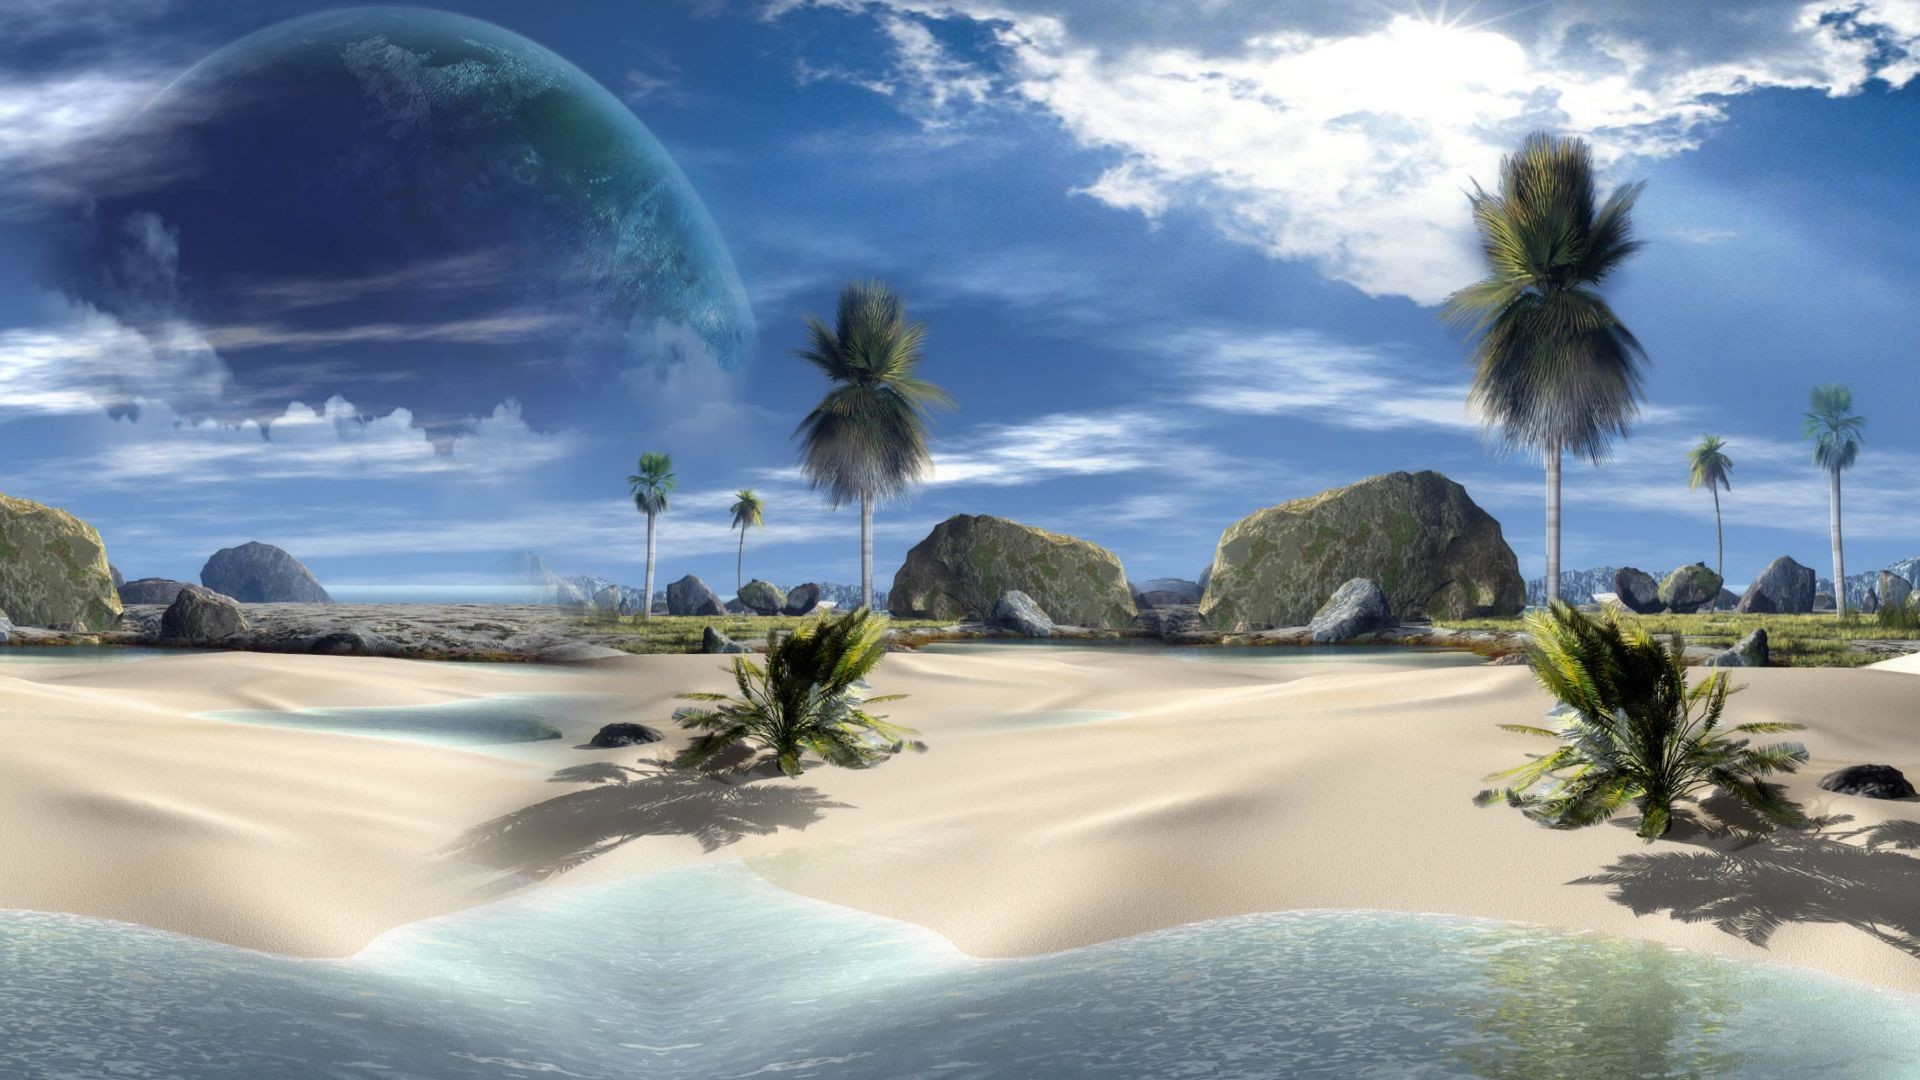 Pin 3d Beach Desktop Wallpaper 1920x1080 1920x1080